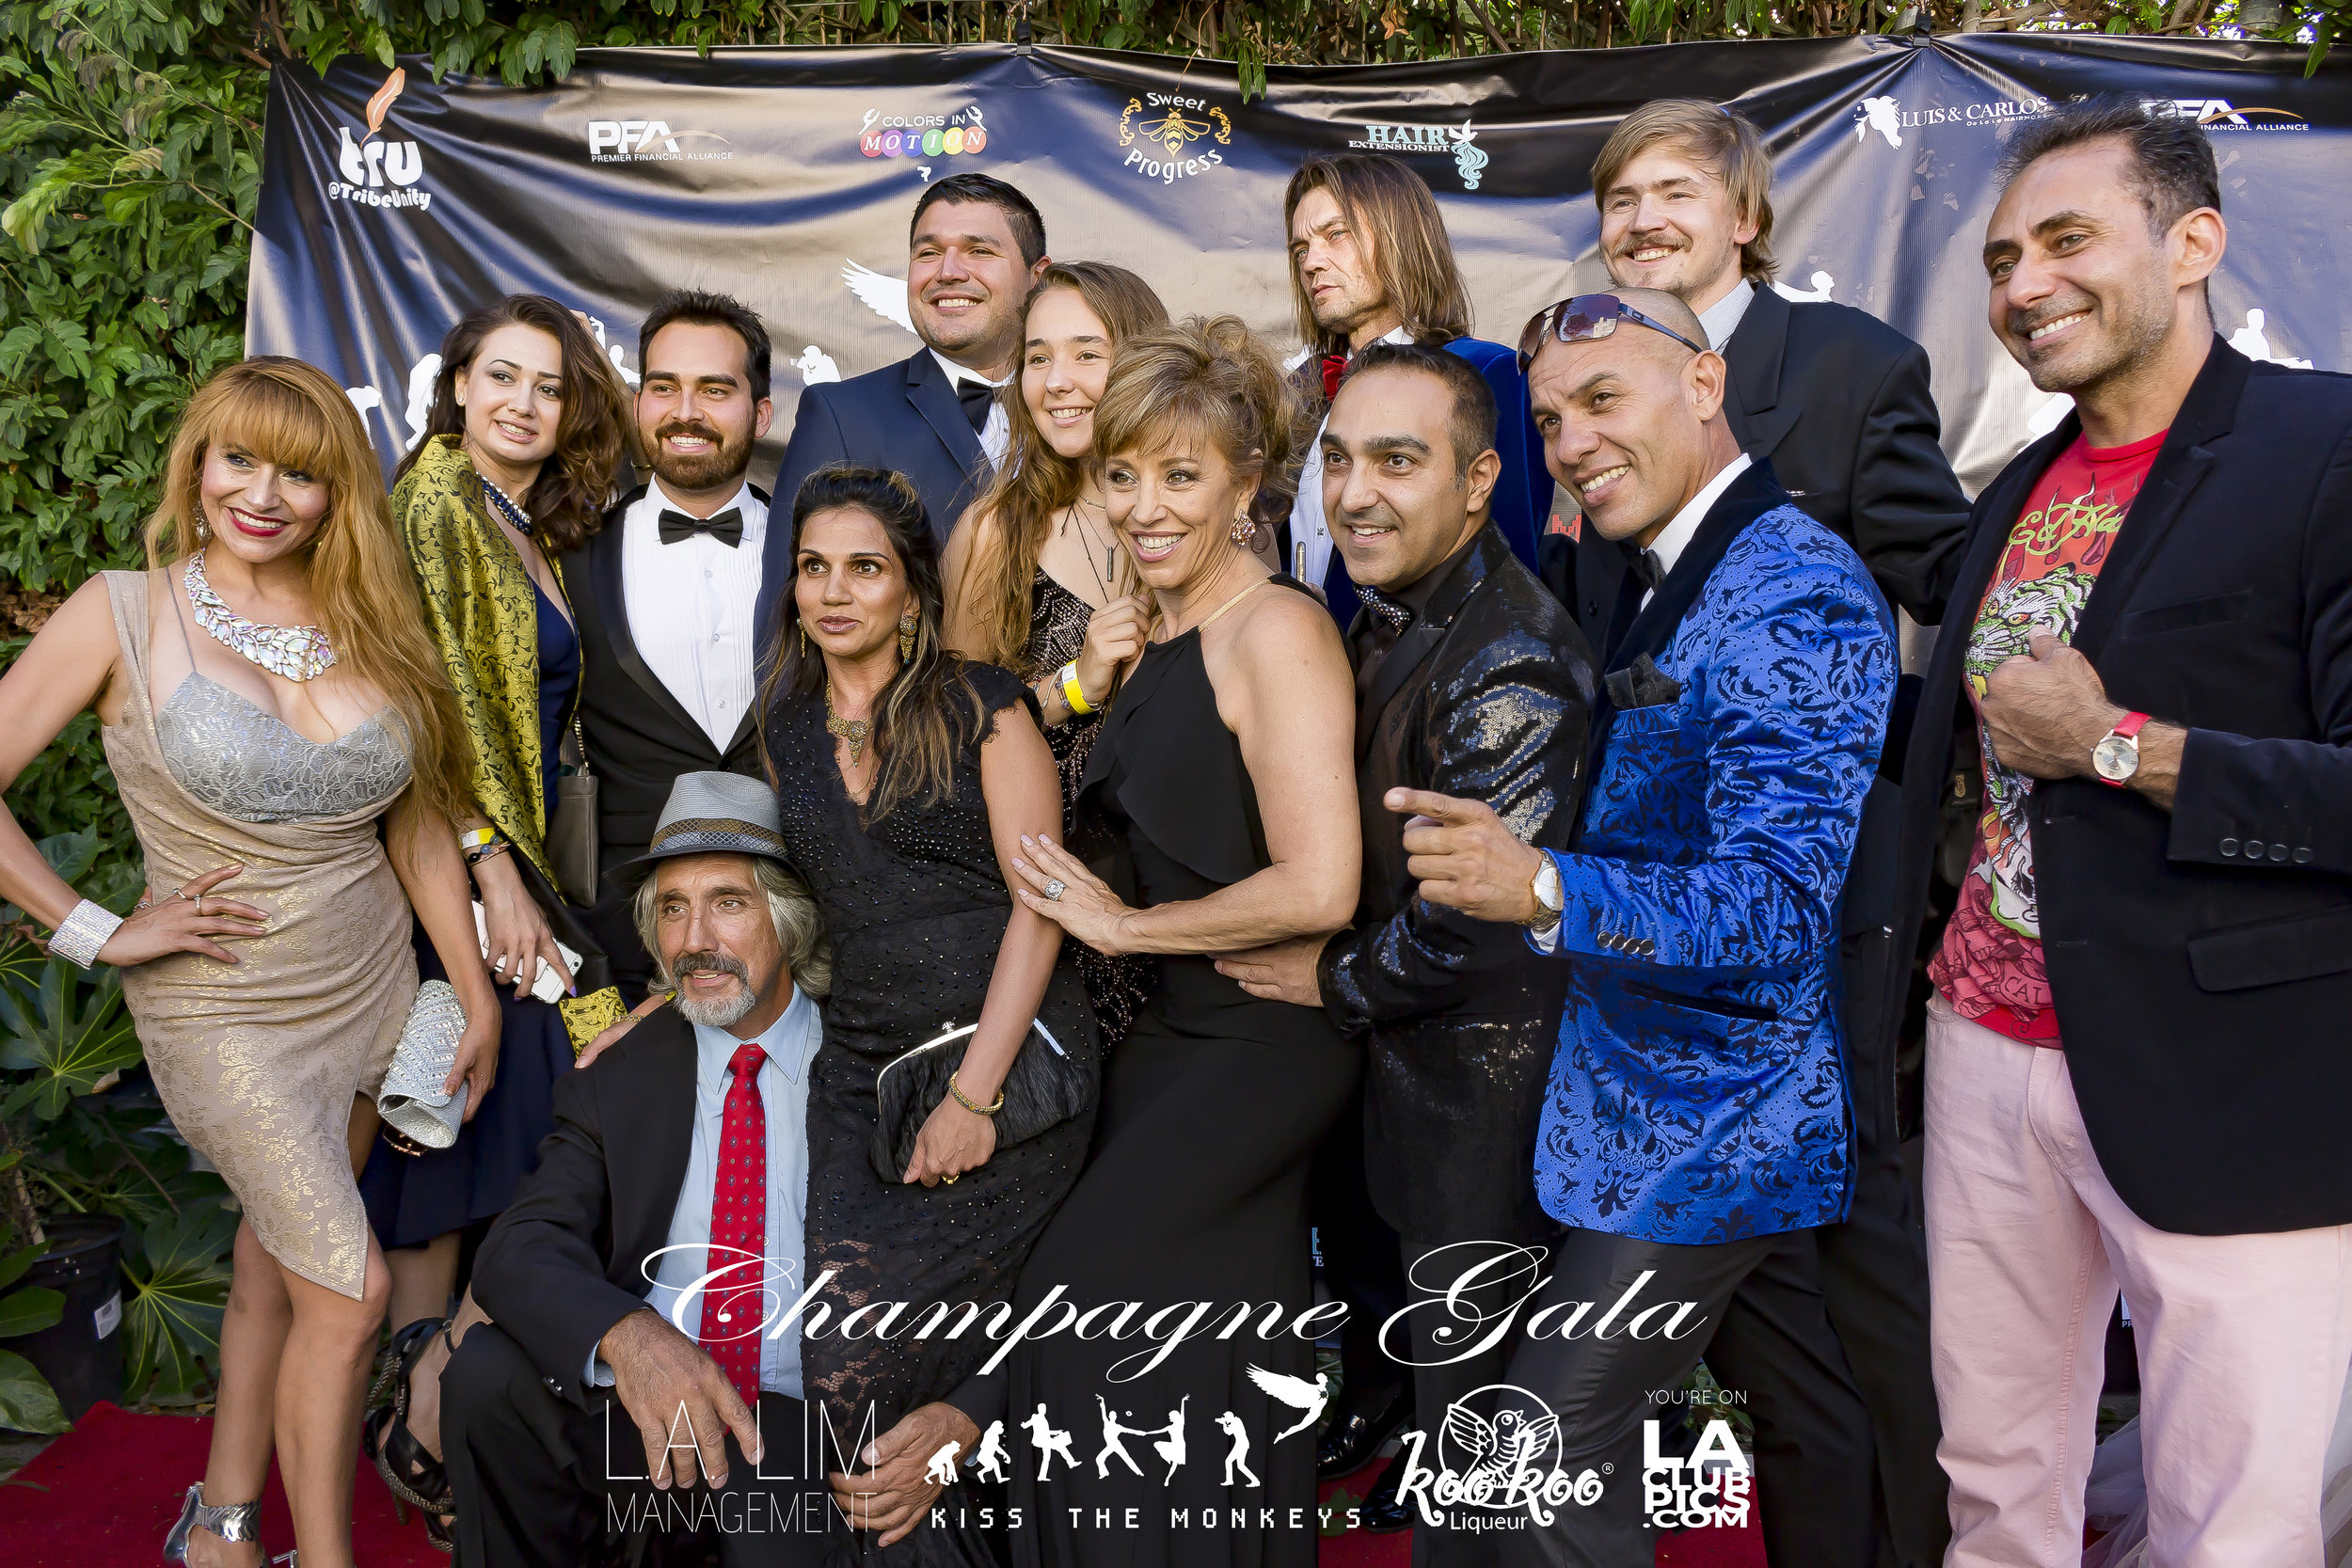 Kiss The Monkeys - Champagne Gala - 07-21-18_34.jpg